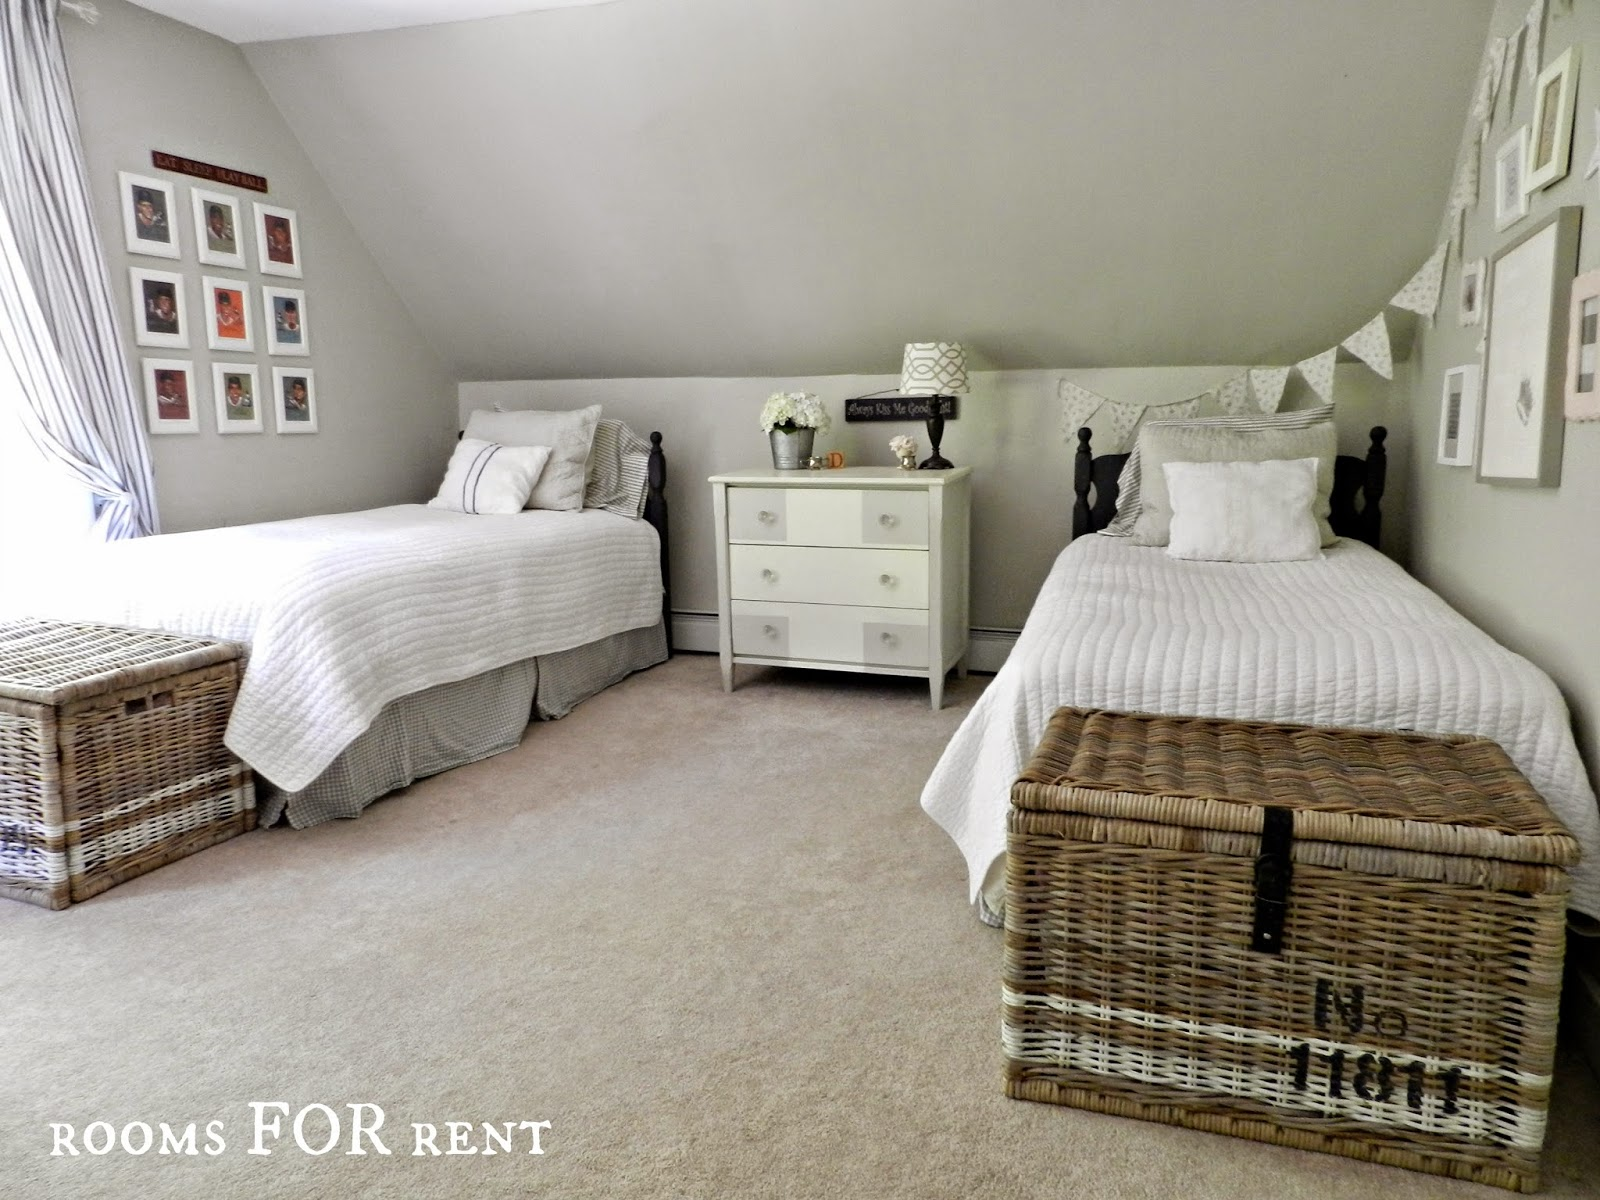 Paint color for gender neutral bedroom jogging path by sherwin williams